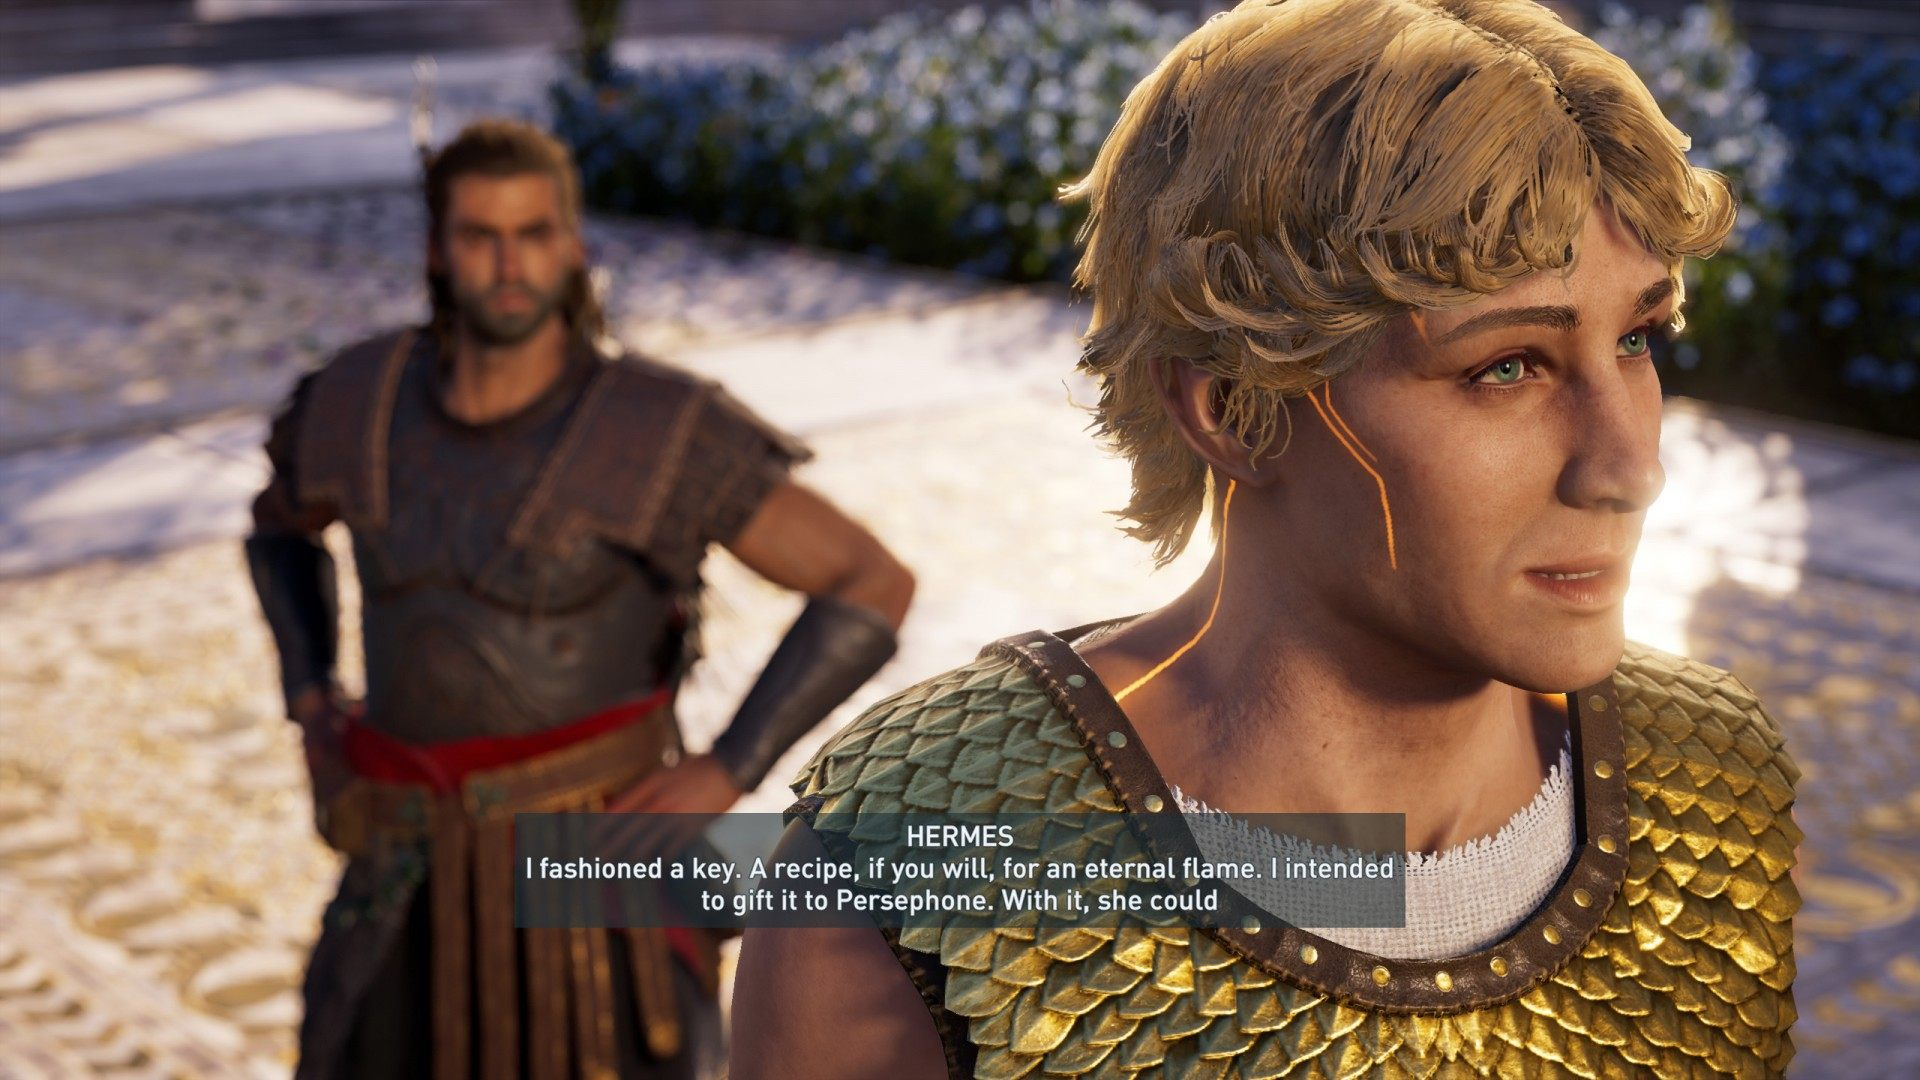 The Keeper And The Flame Assassin S Creed Odyssey Quest